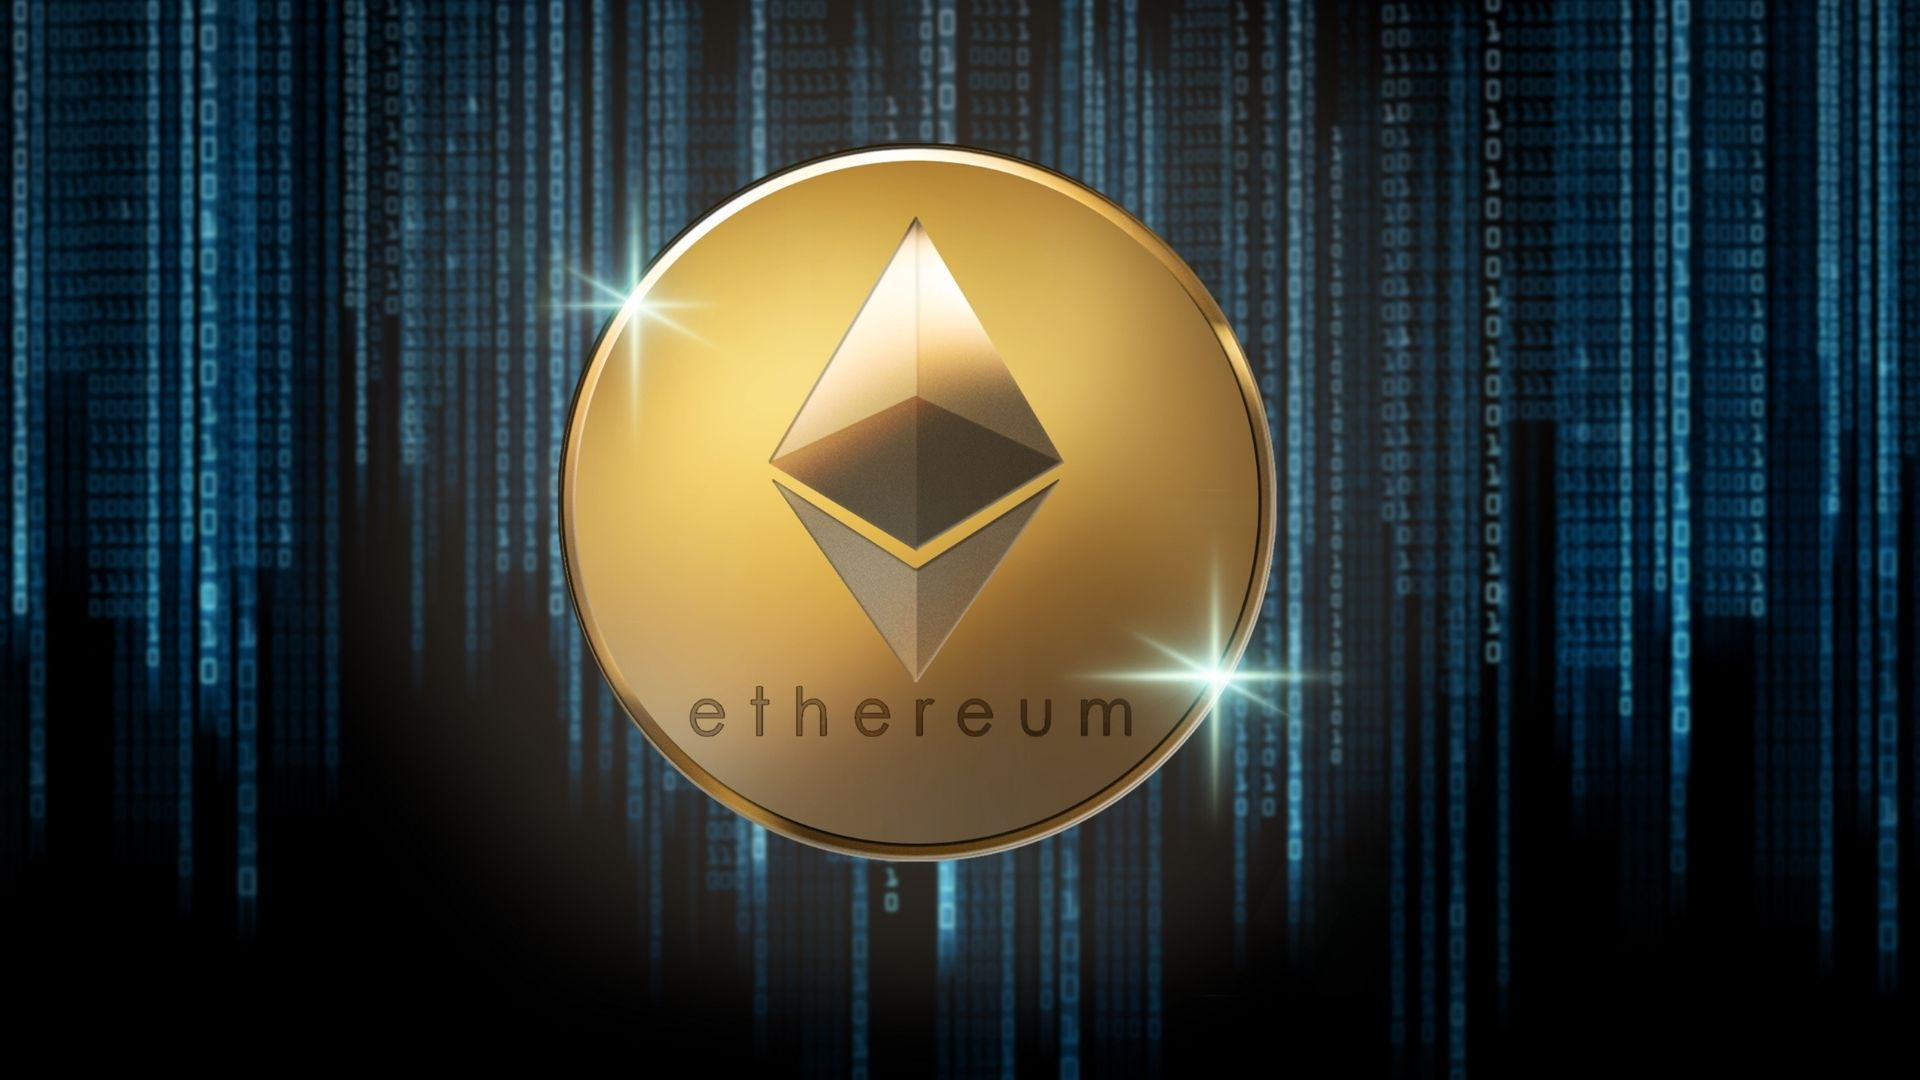 Ethereum: What's lacking during this rally above $3000k